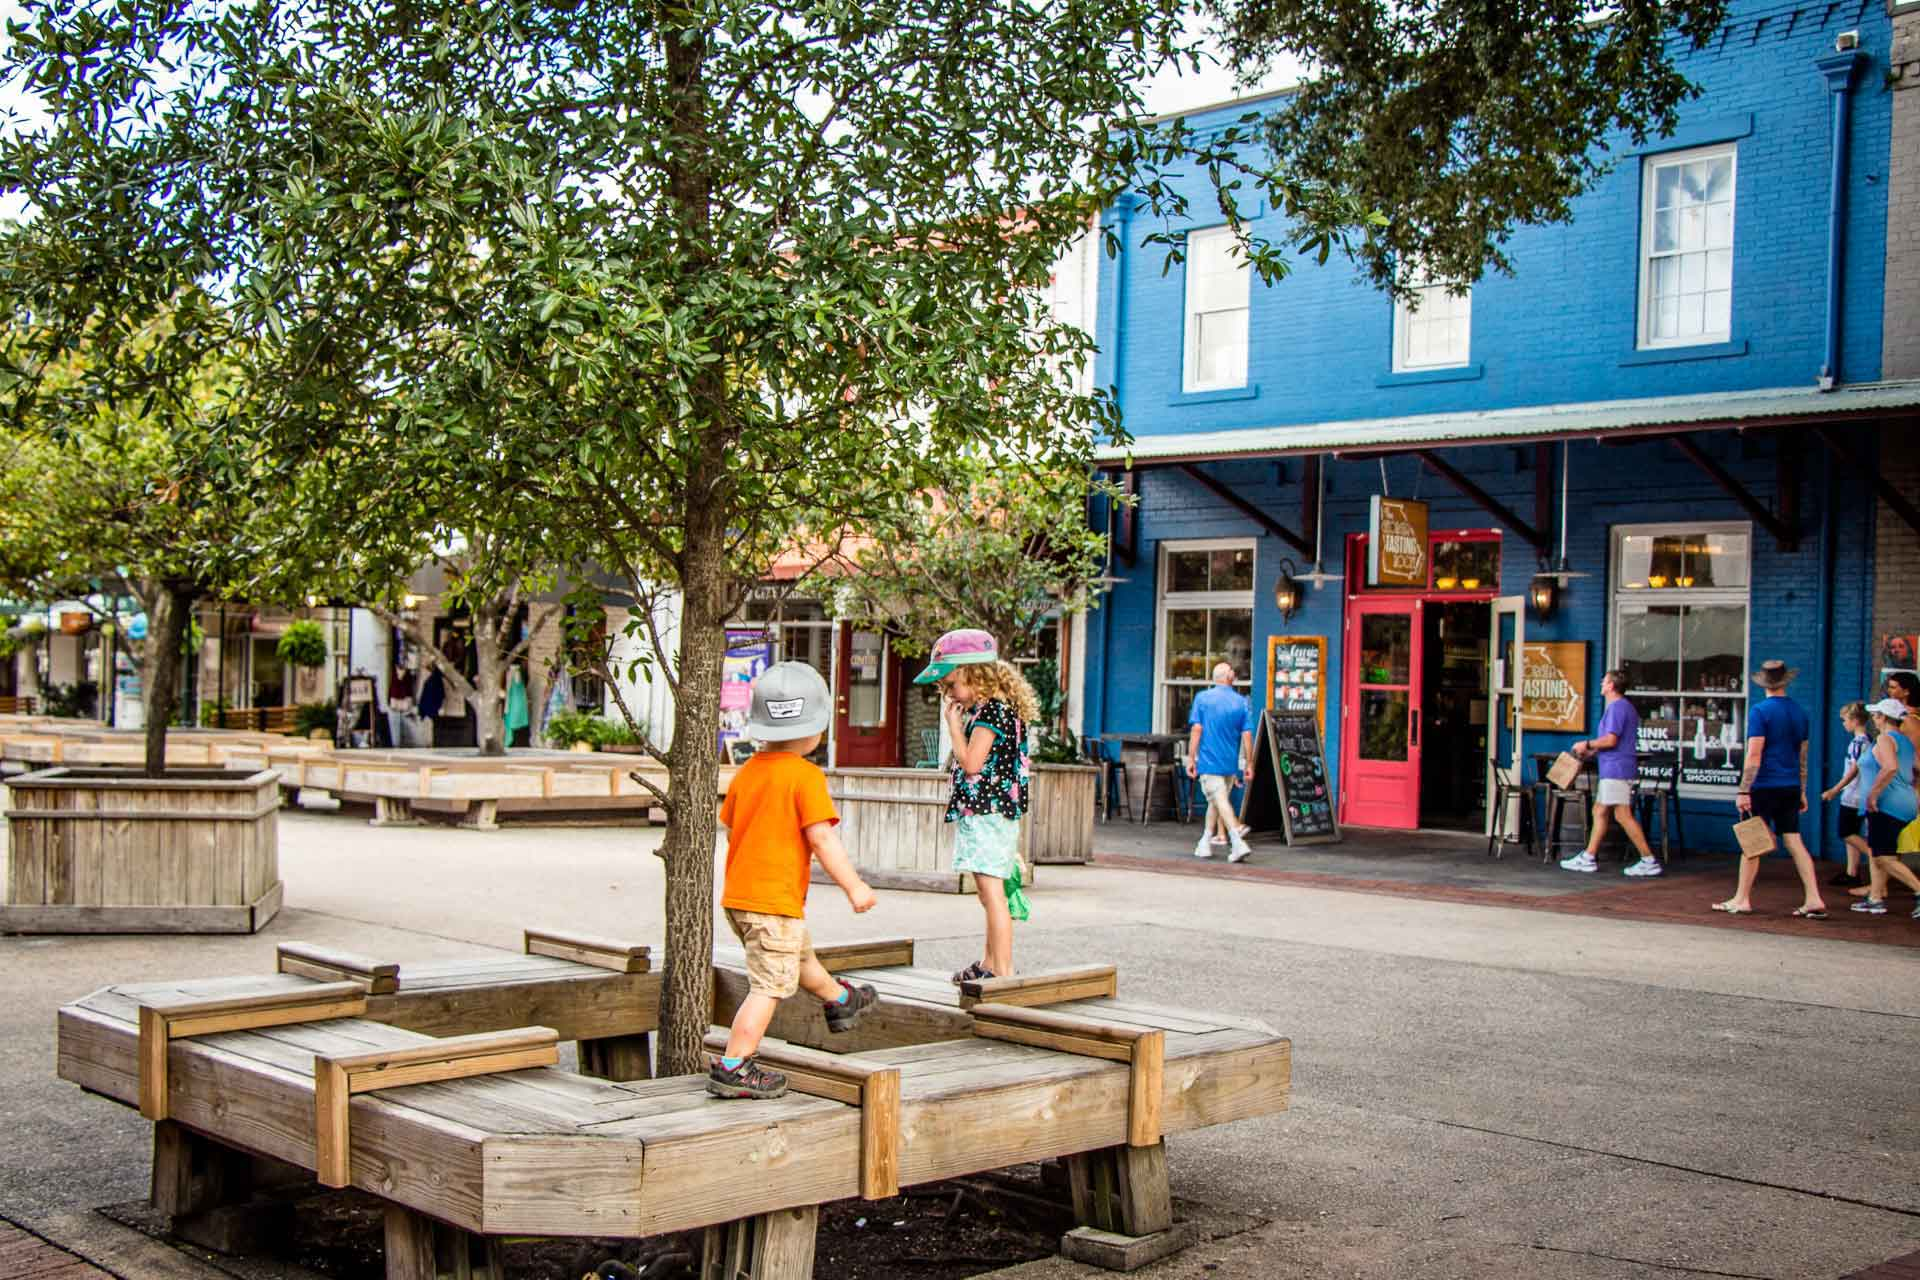 Family Can Travel - 2 Days in Savannah with Kids - Running in the Pedestrian Only City Market